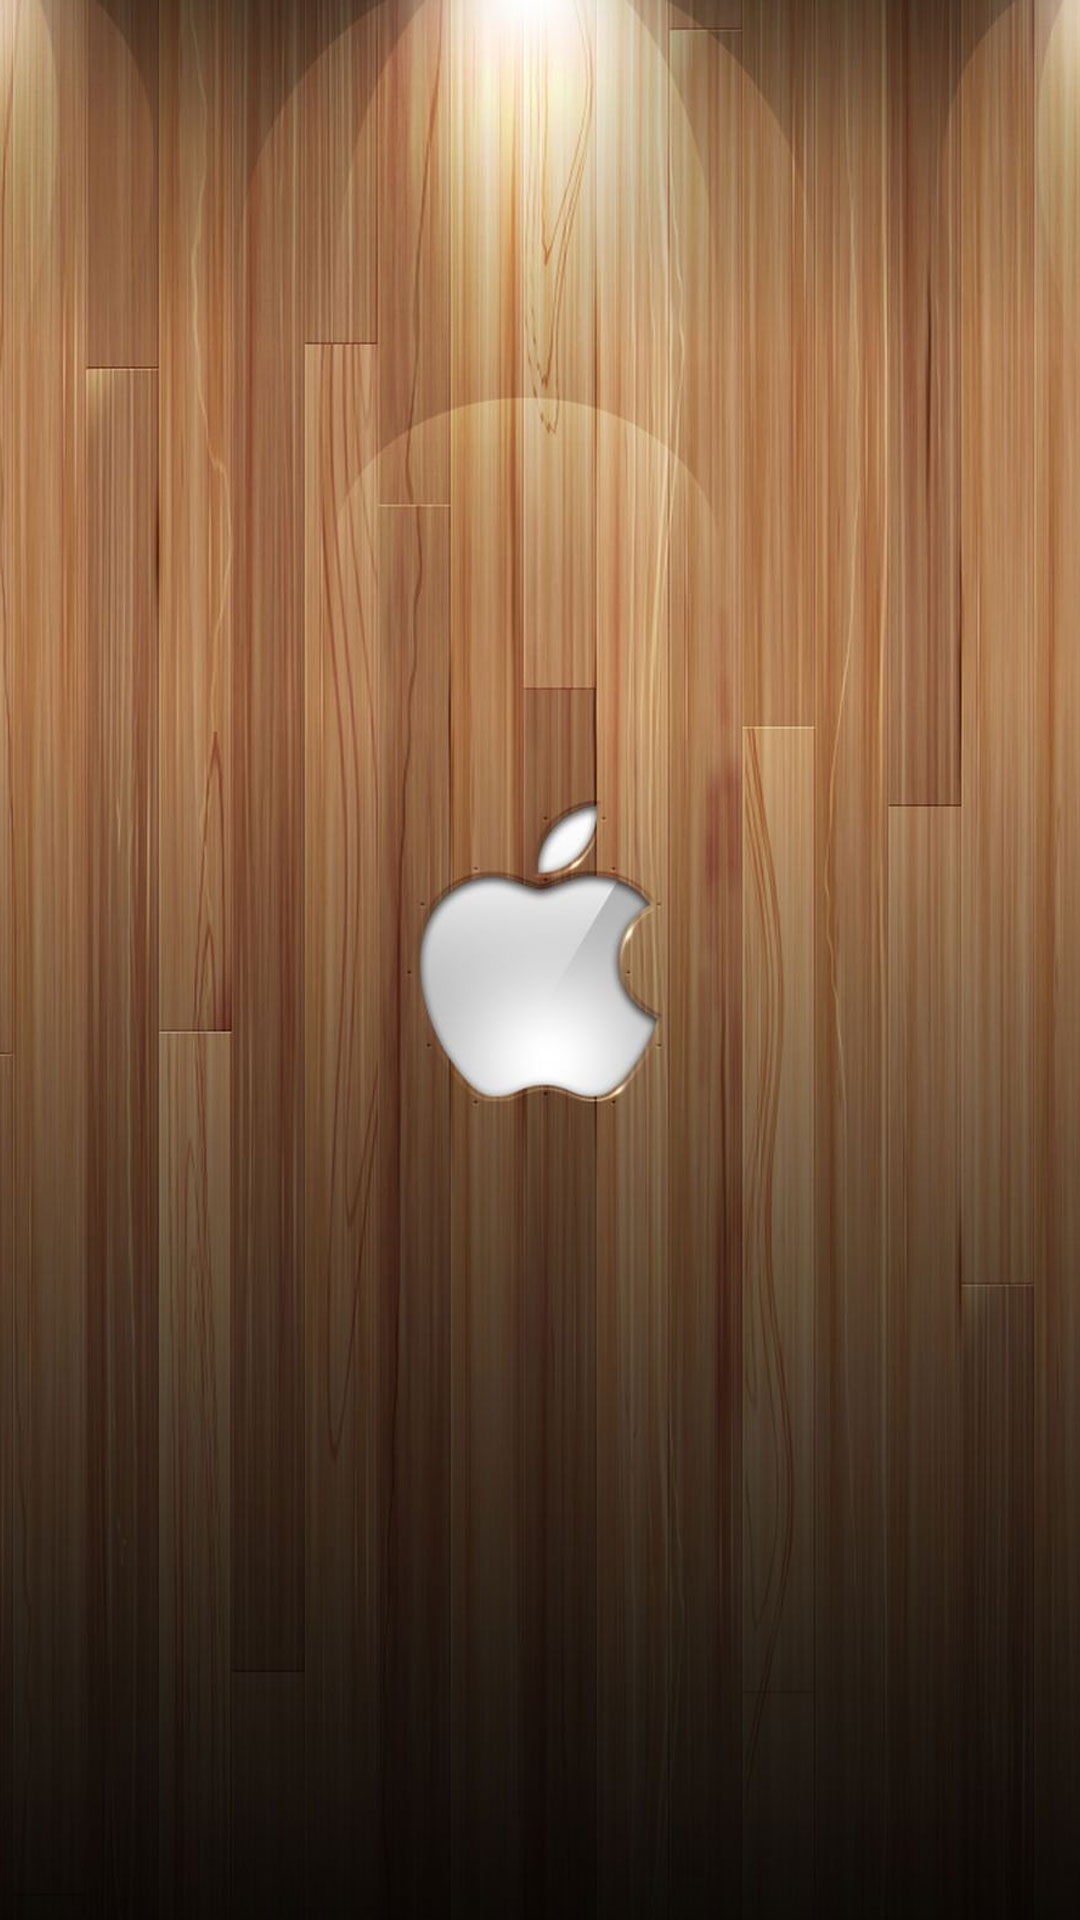 Iphone 6 Plus Wallpaper Dimensions   iphone 6 or 5 5 for the iphone 6 1080x1920